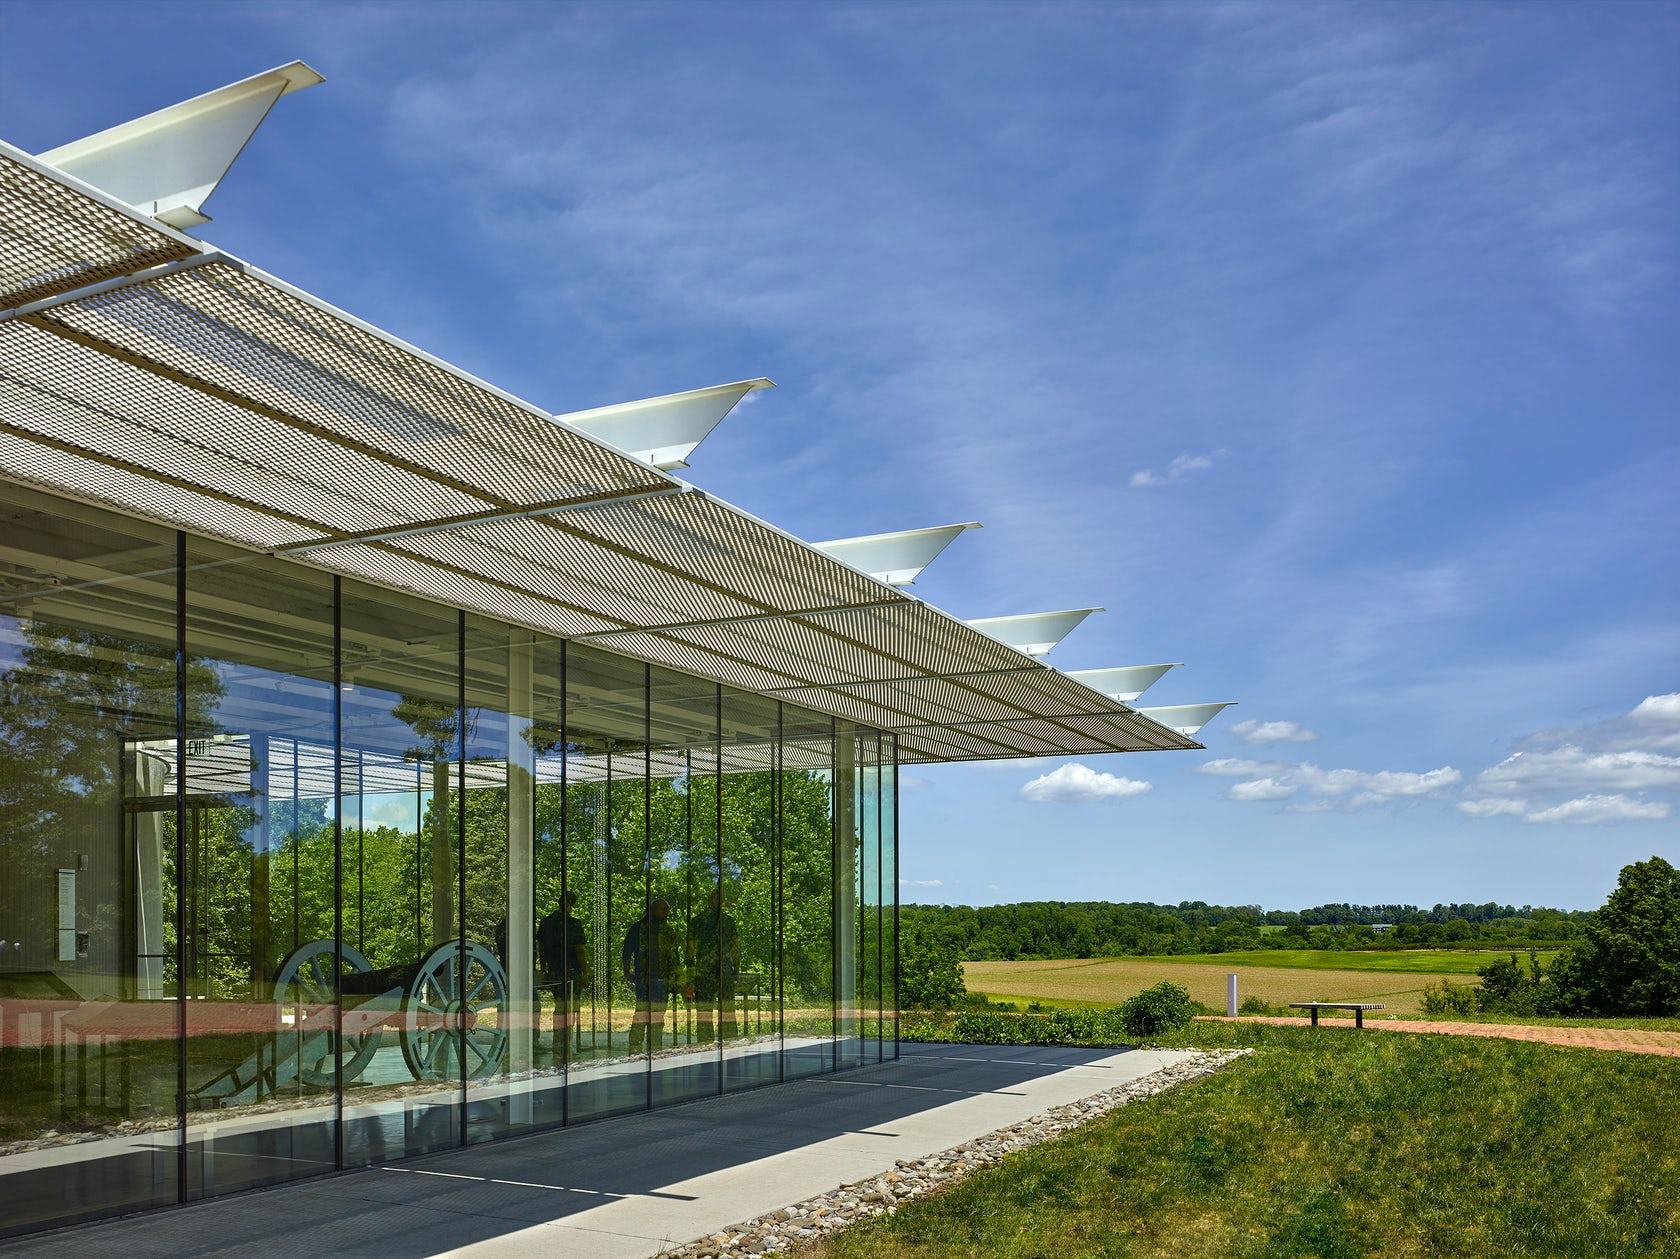 Monmouth Battlefield State Park Visitor Center on Architizer